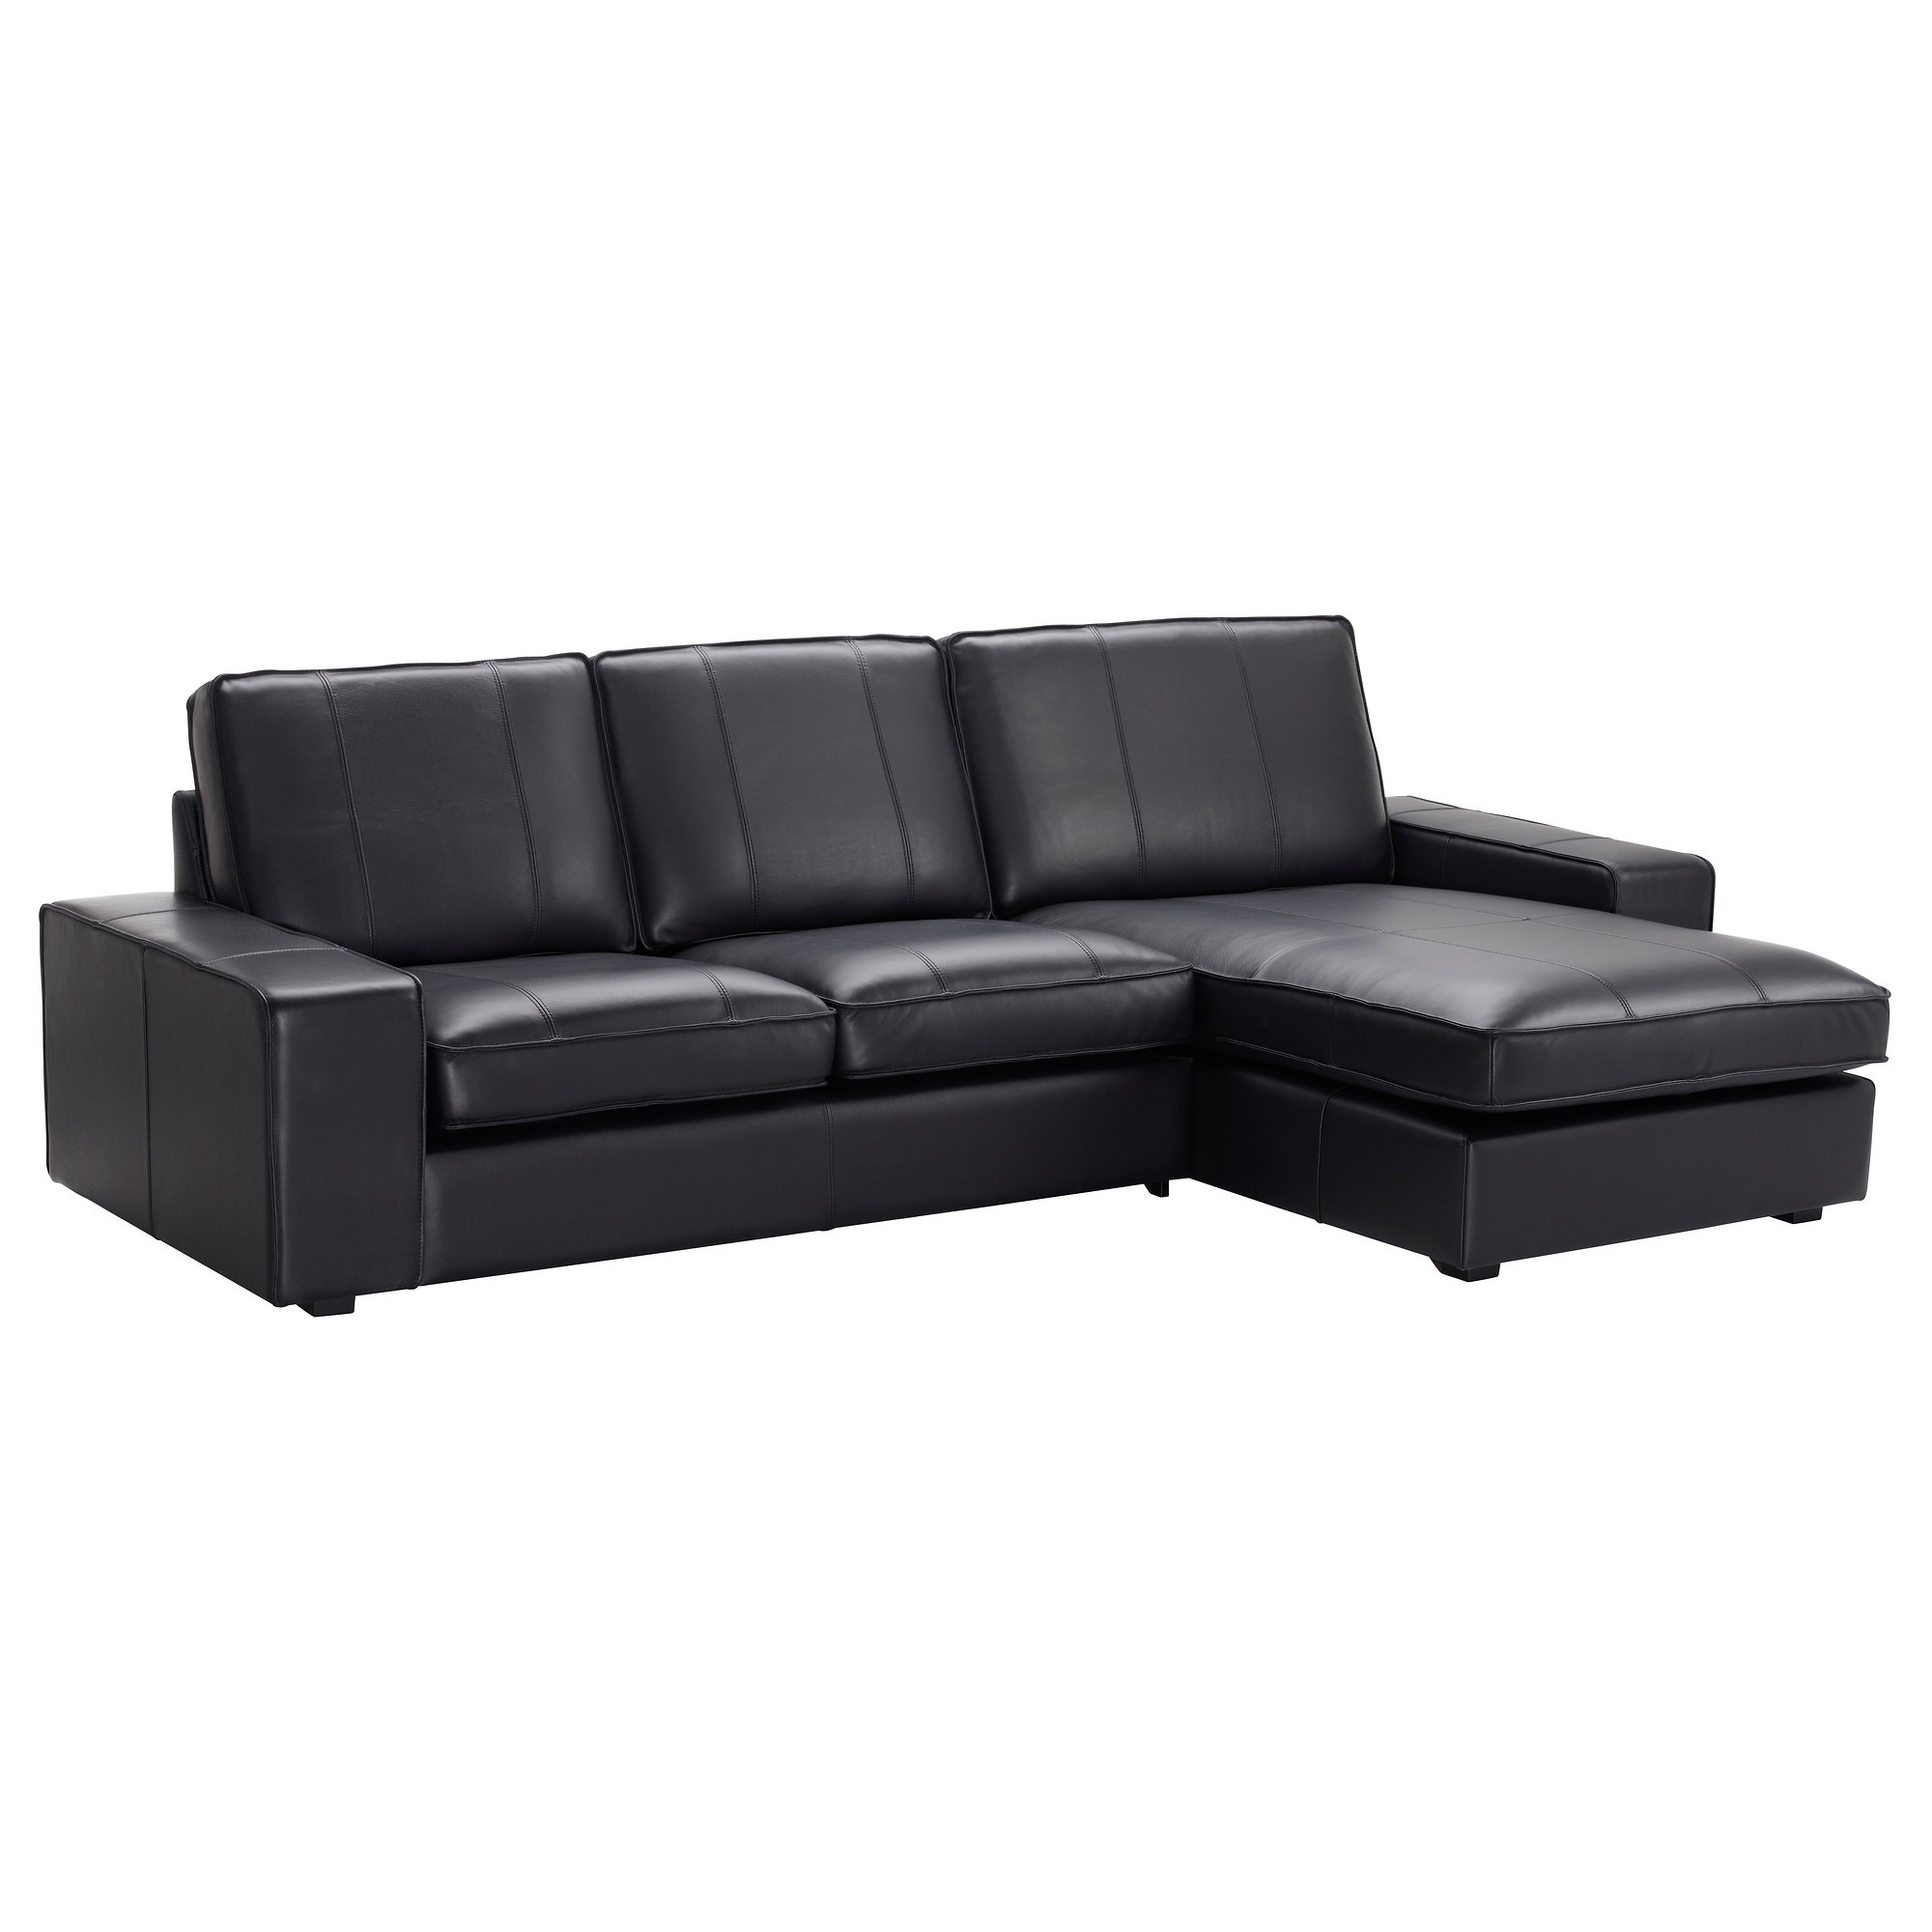 Canape cuir ikea 2 places canap id es de d coration for Canape convertible 2 places cuir